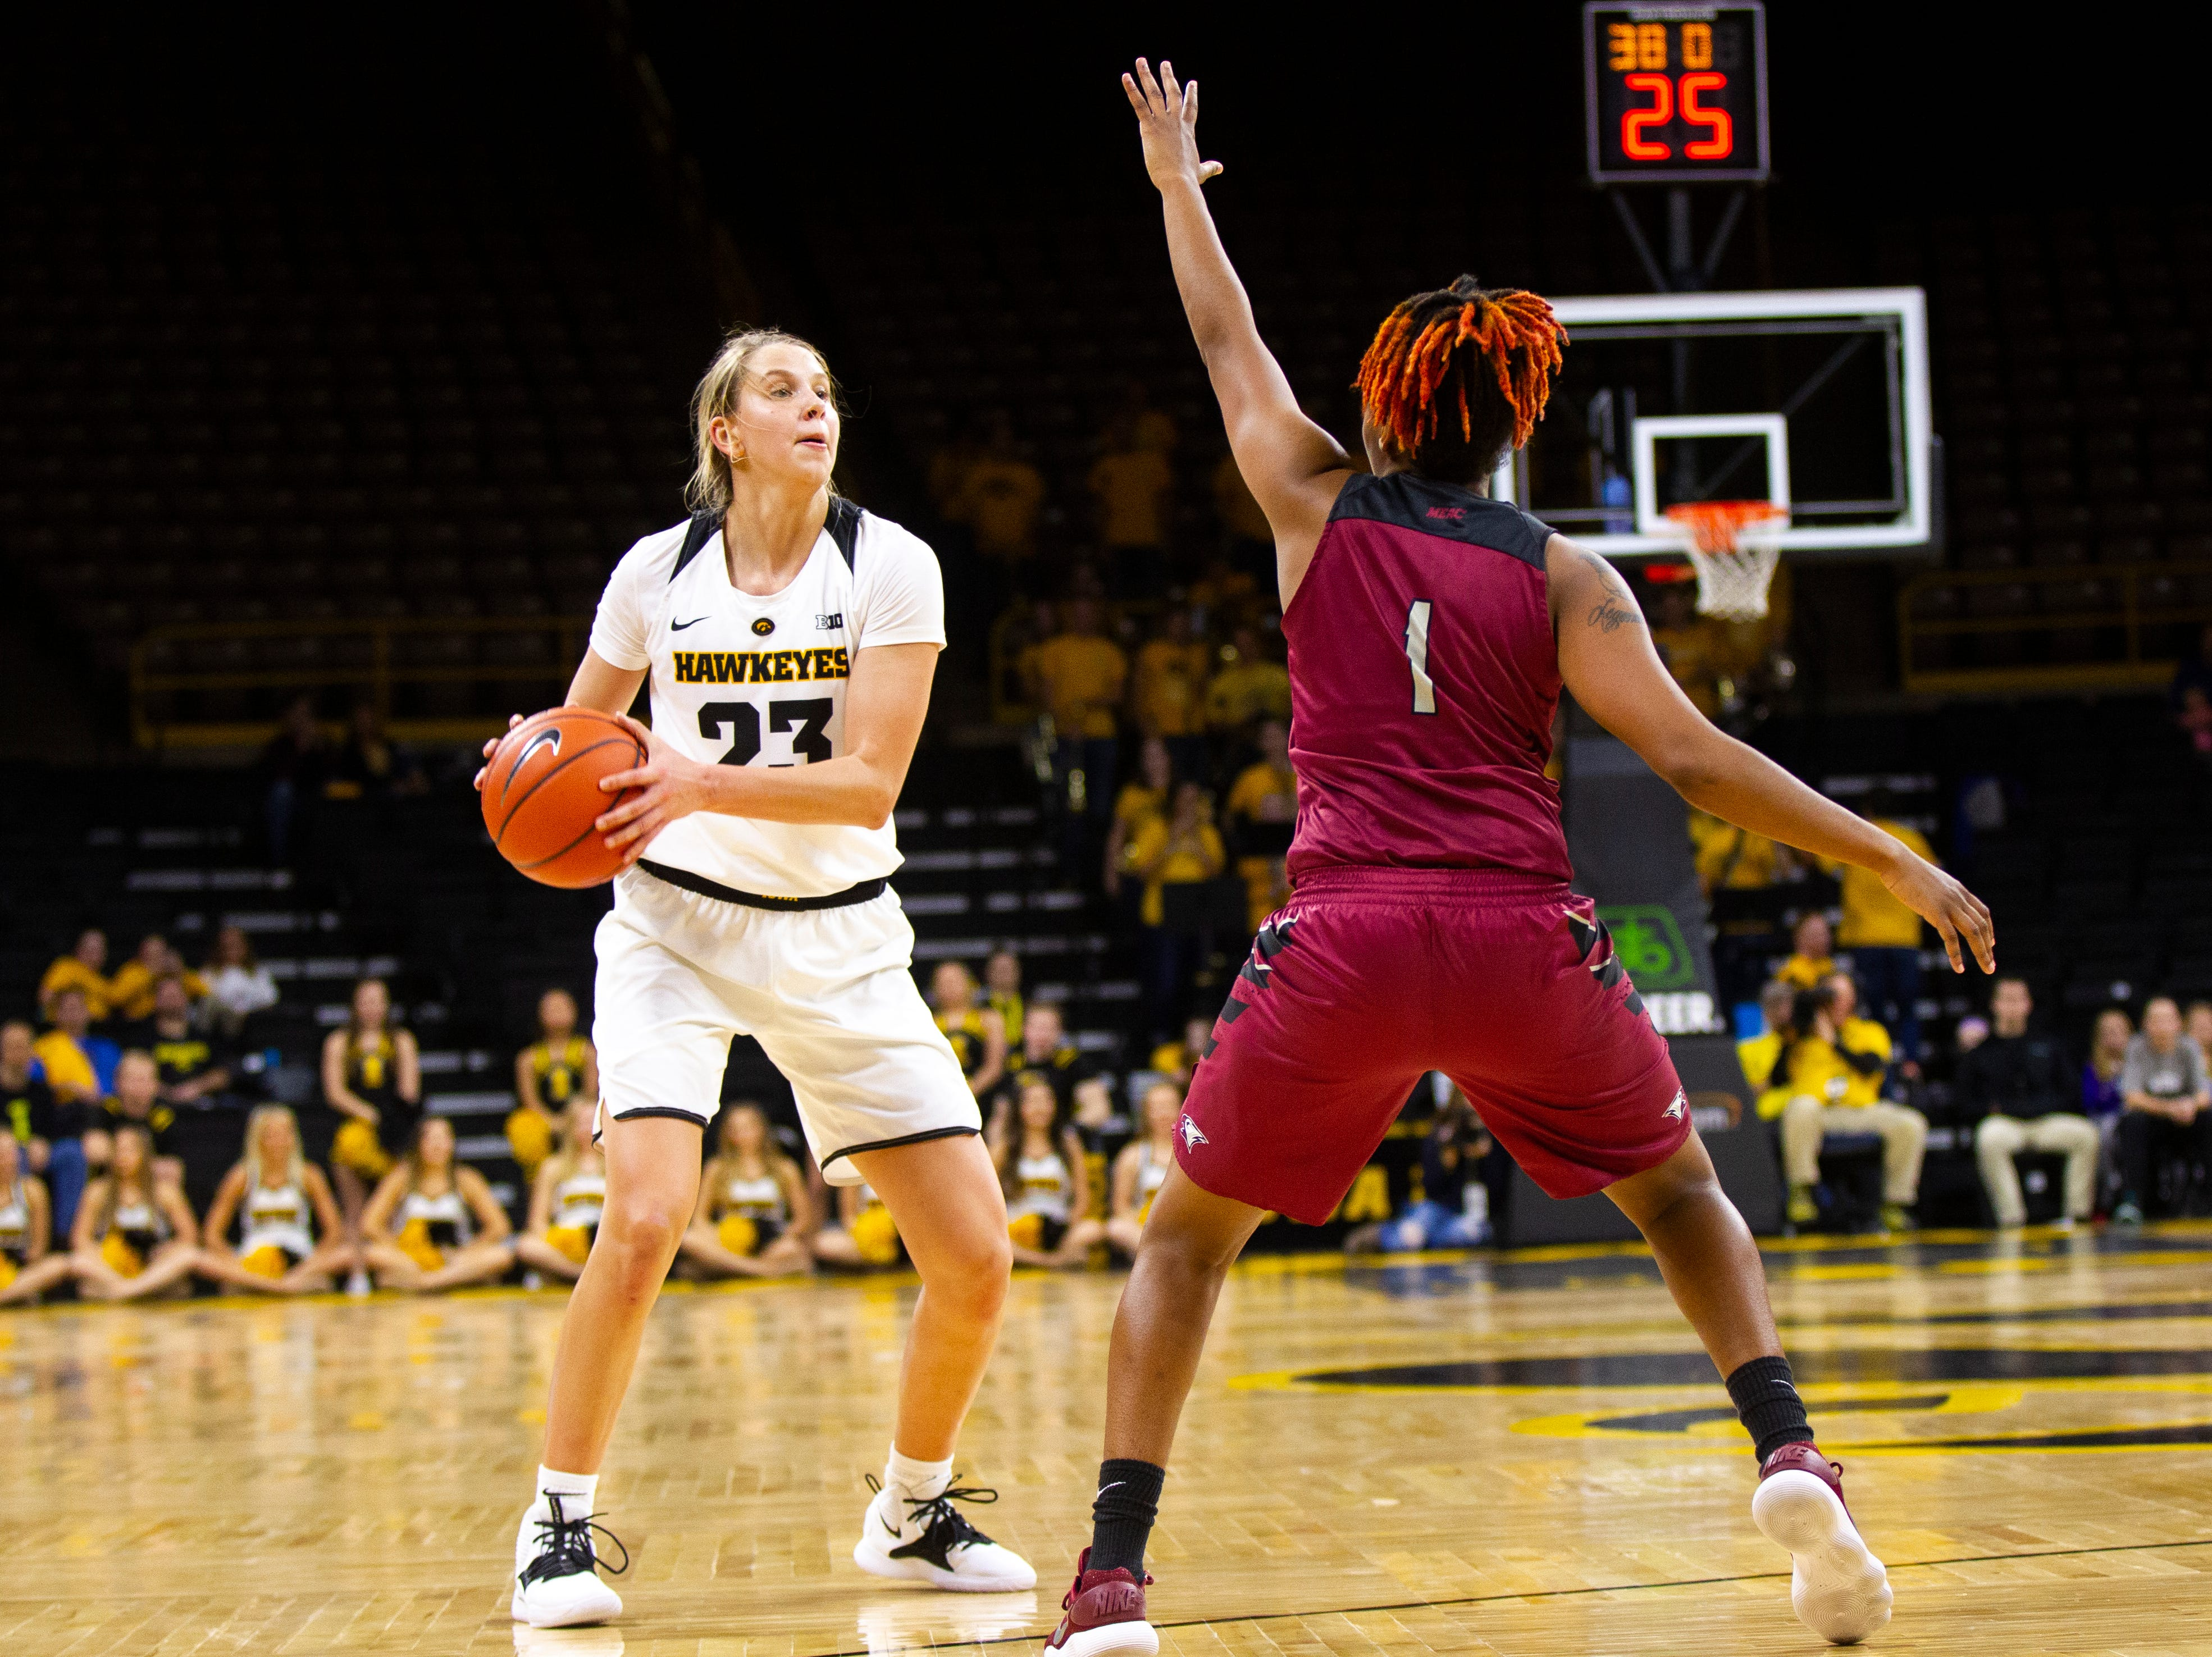 Iowa forward Logan Cook (23) looks to pass while being defended by North Carolina Central's Dasmine Kasey (1) during an NCAA women's basketball game on Saturday, Nov. 17, 2018, at Carver-Hawkeye Arena in Iowa City.